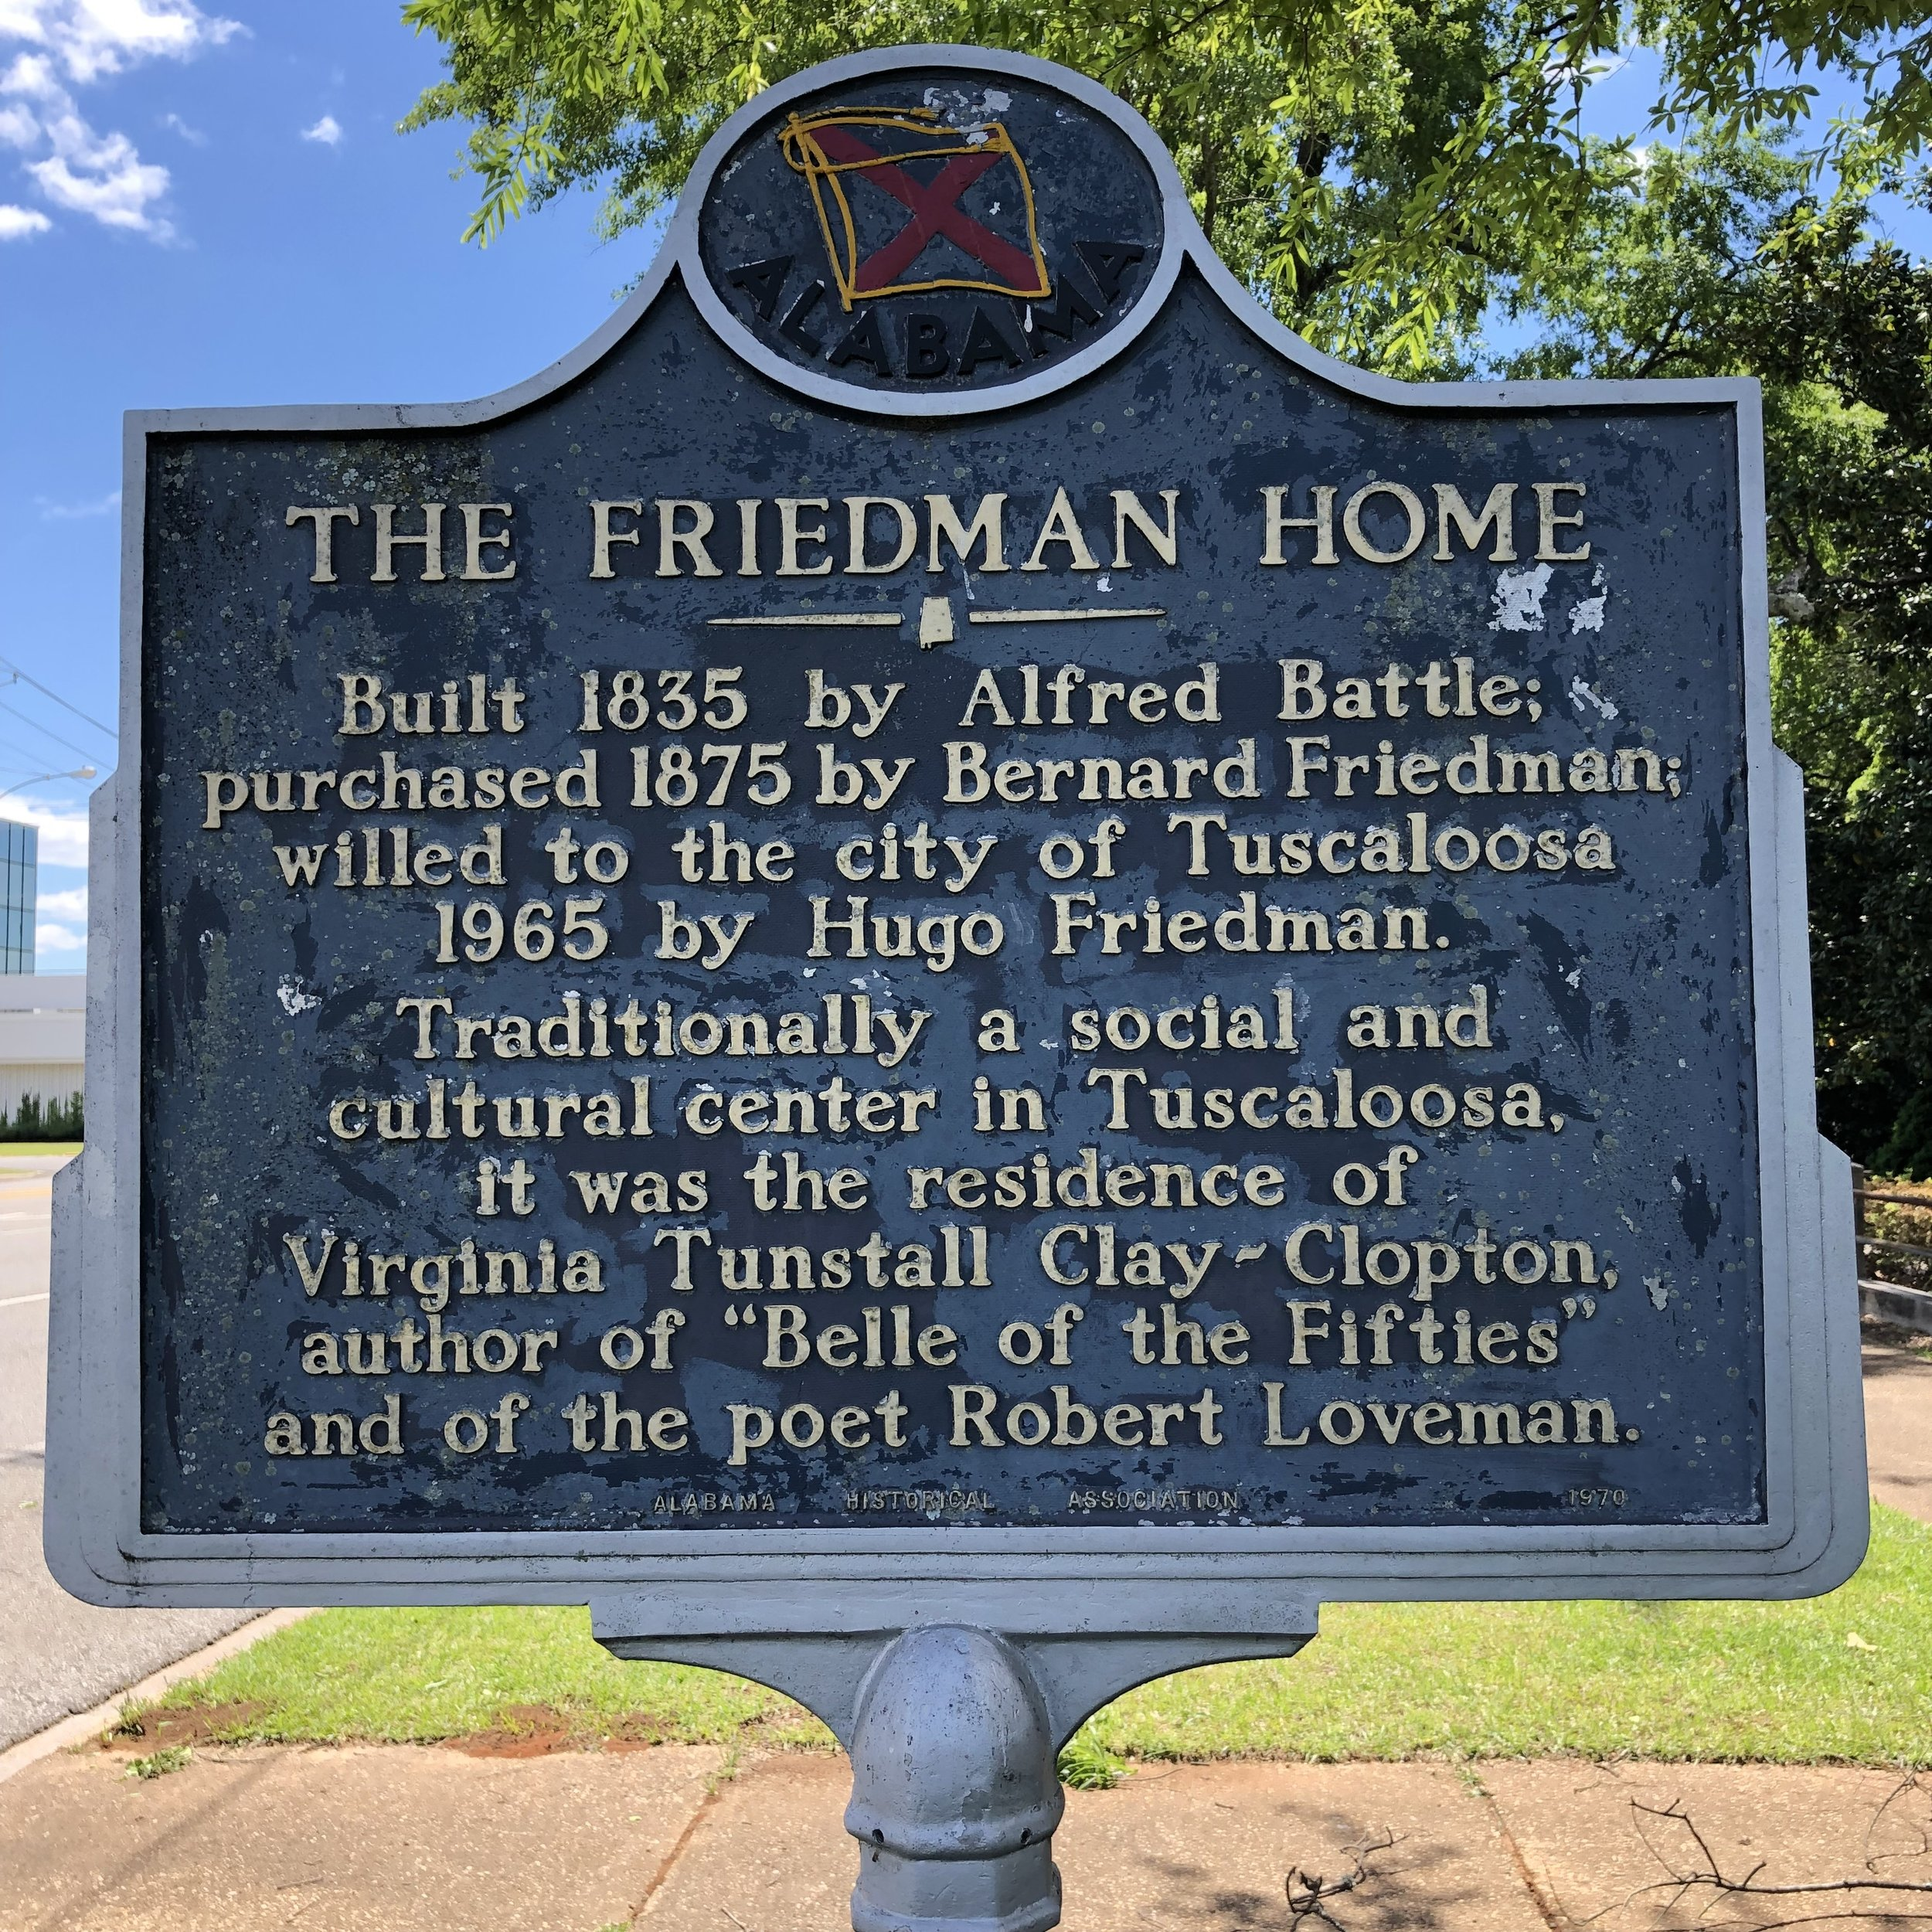 The Friedman Home Marker … Photo by Caroline Pugh